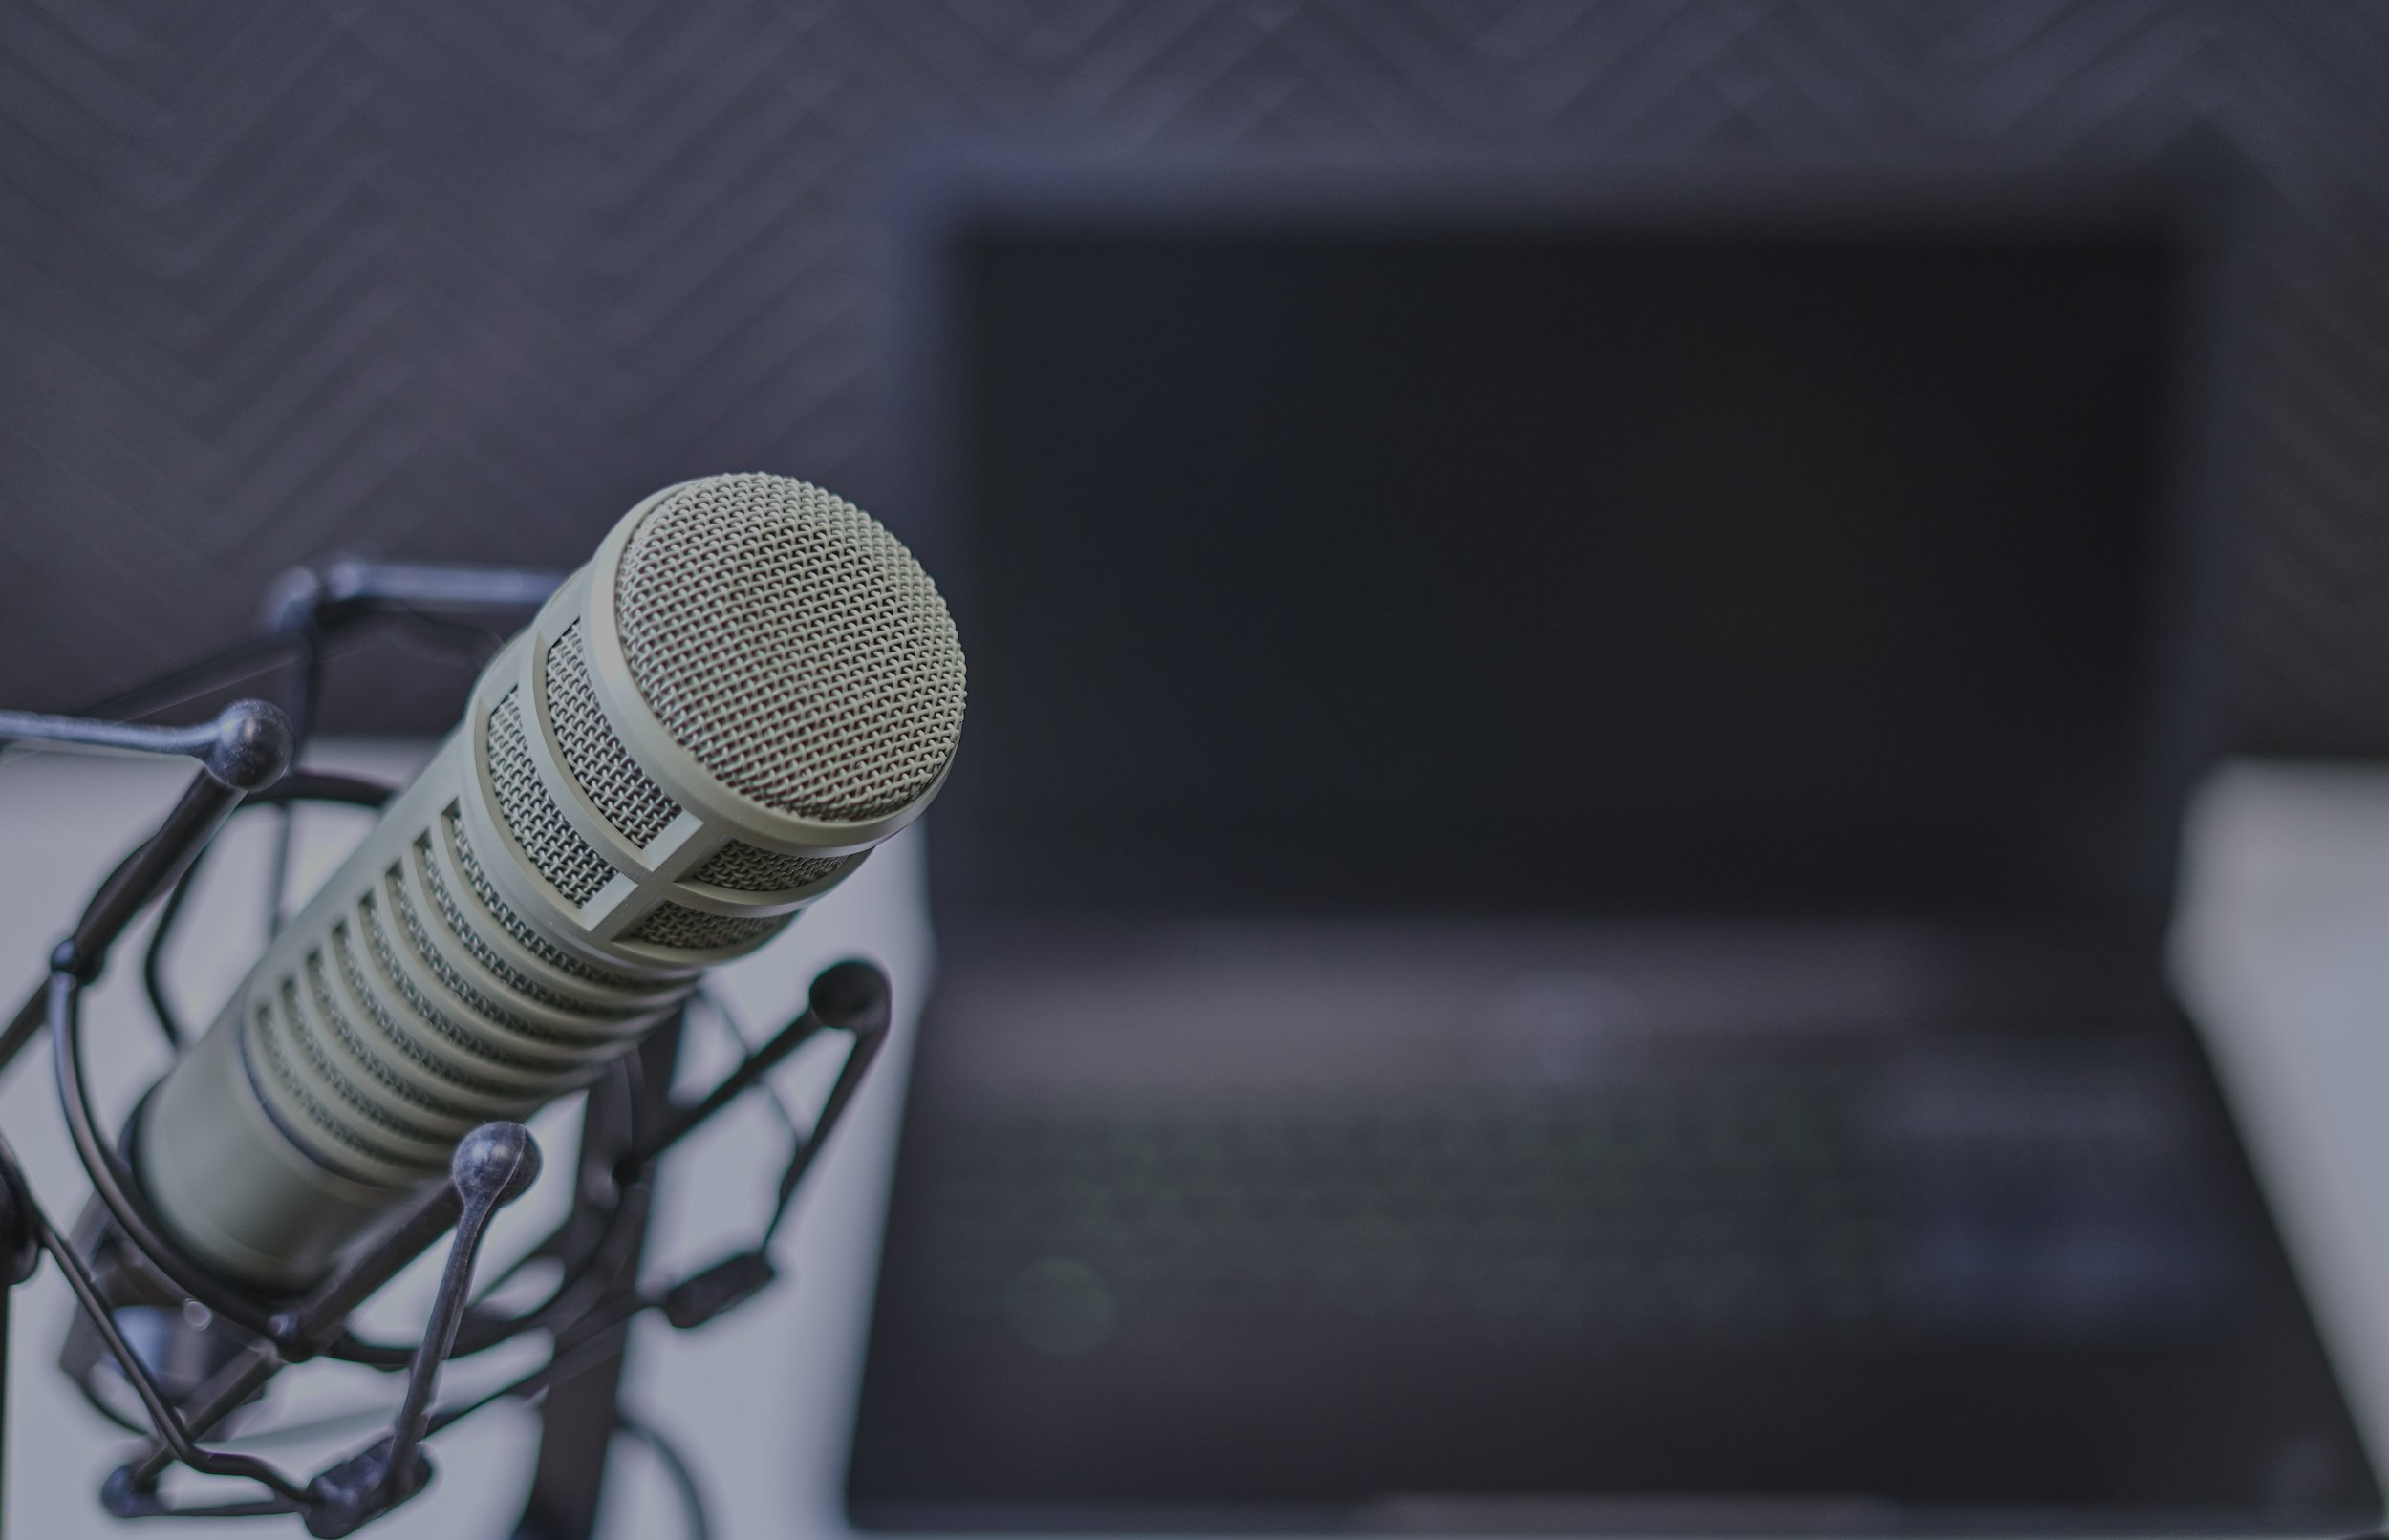 The Electro-Voice RE20 is a broadcasting standard across the world.  Photo by  Dan LeFebvre  on  Unsplash